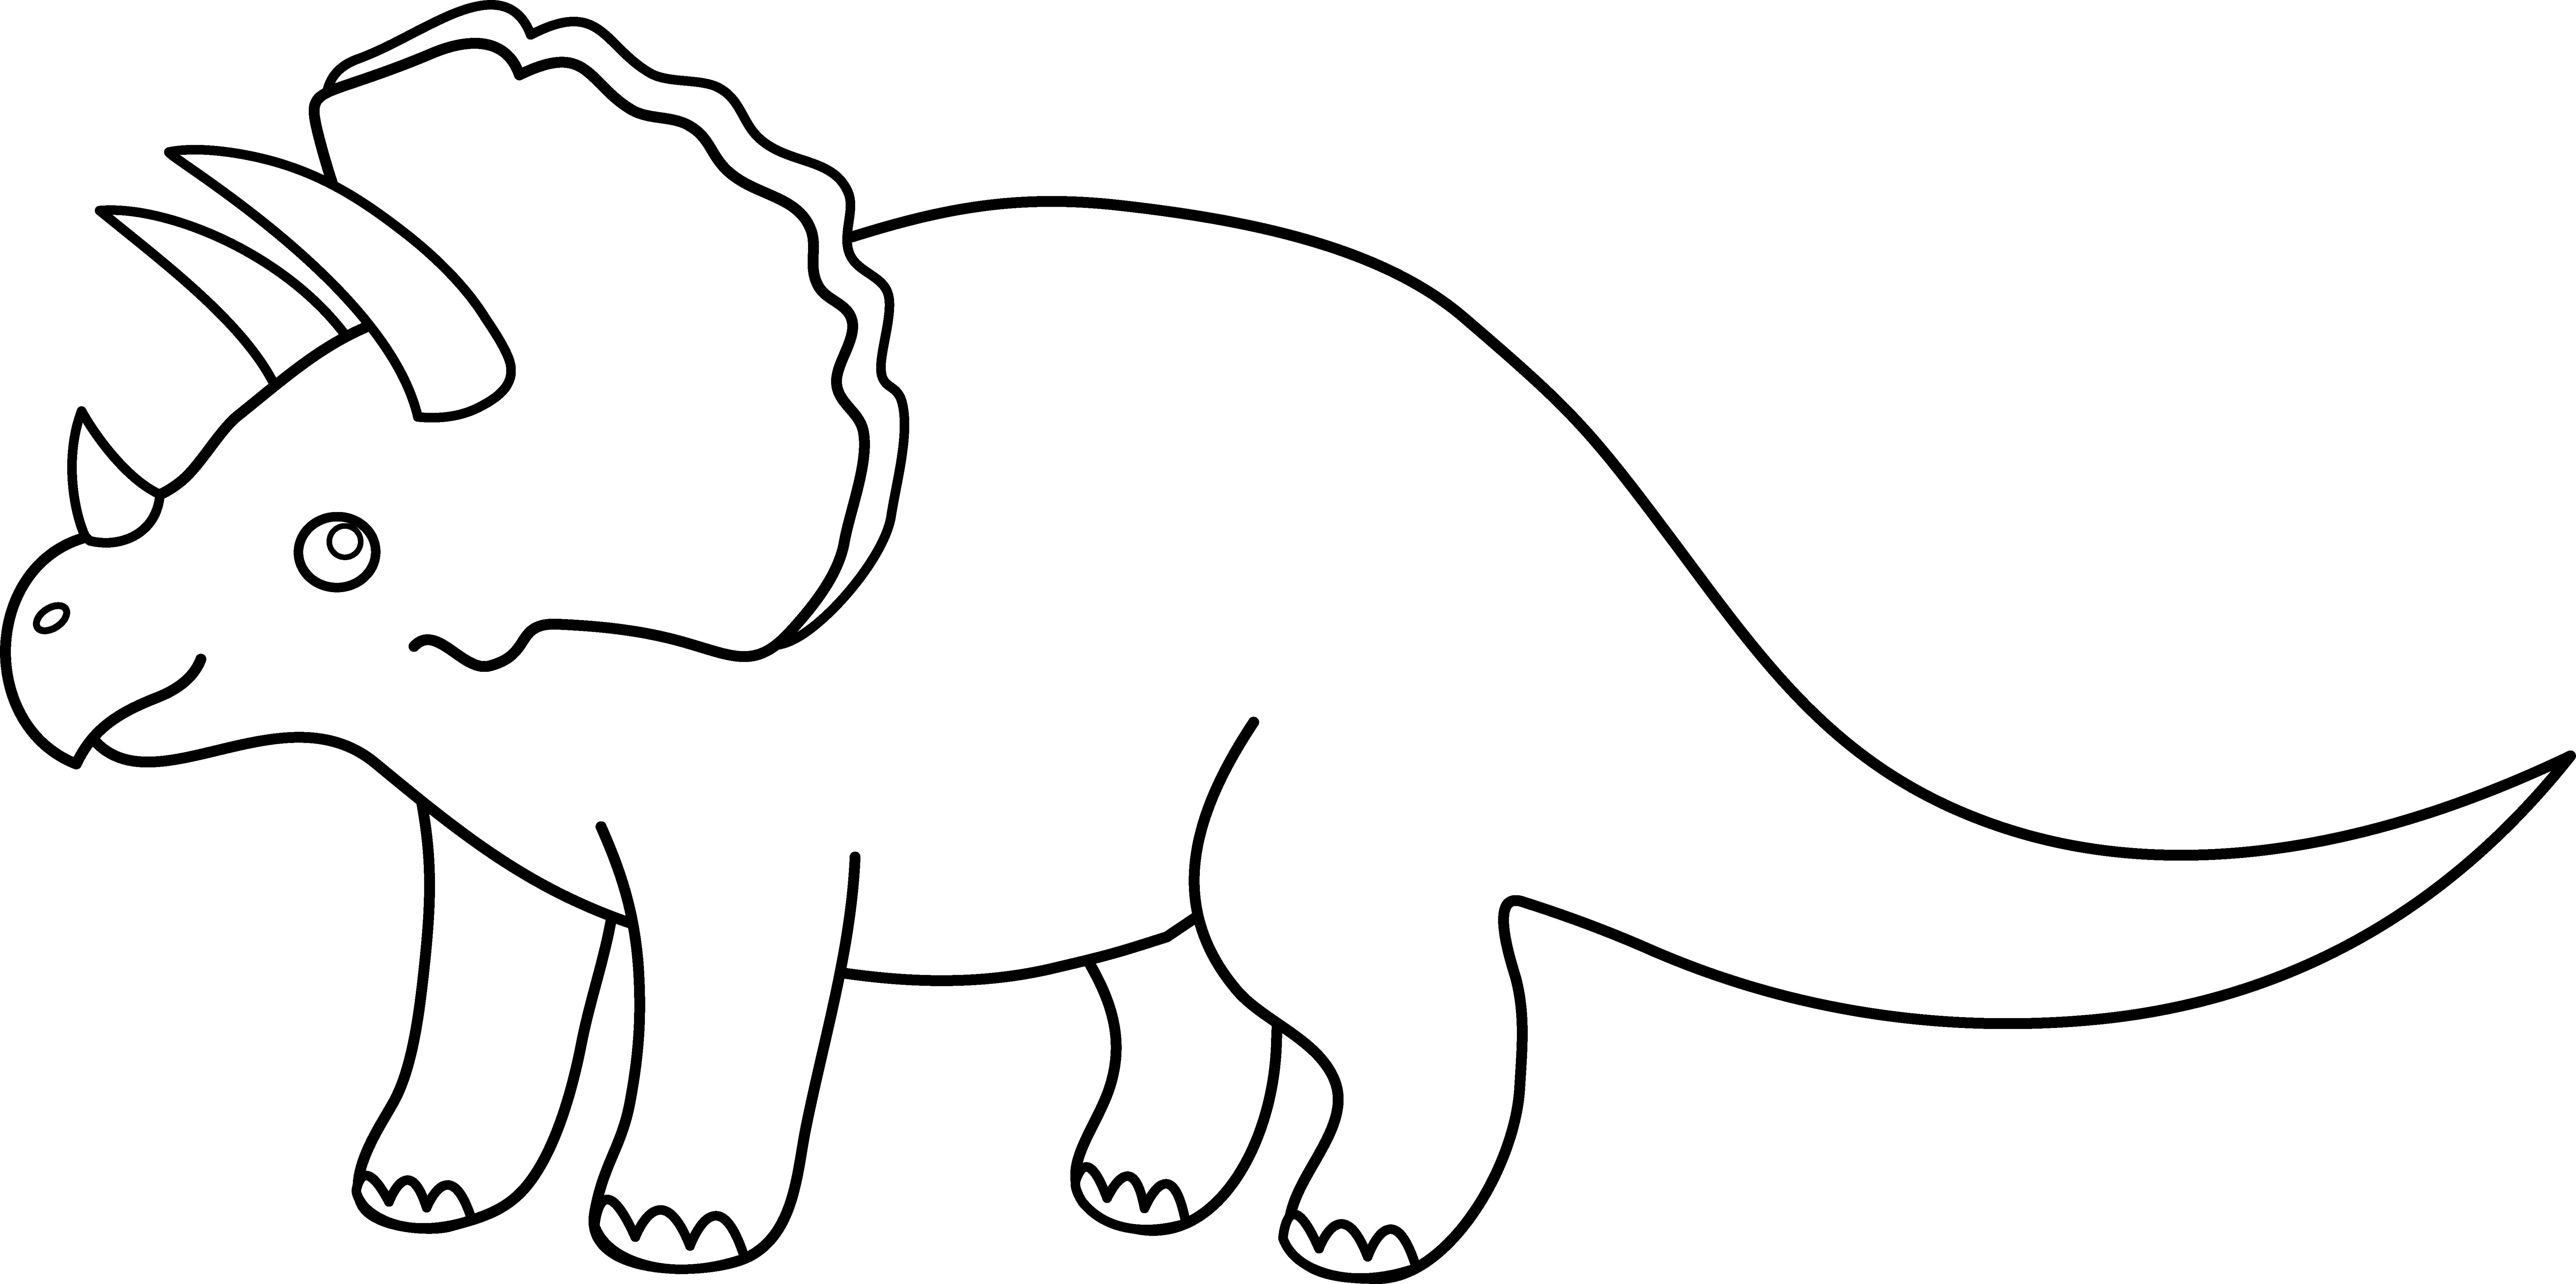 Dinosaurs Clipart Traceable Dinosaurs Traceable